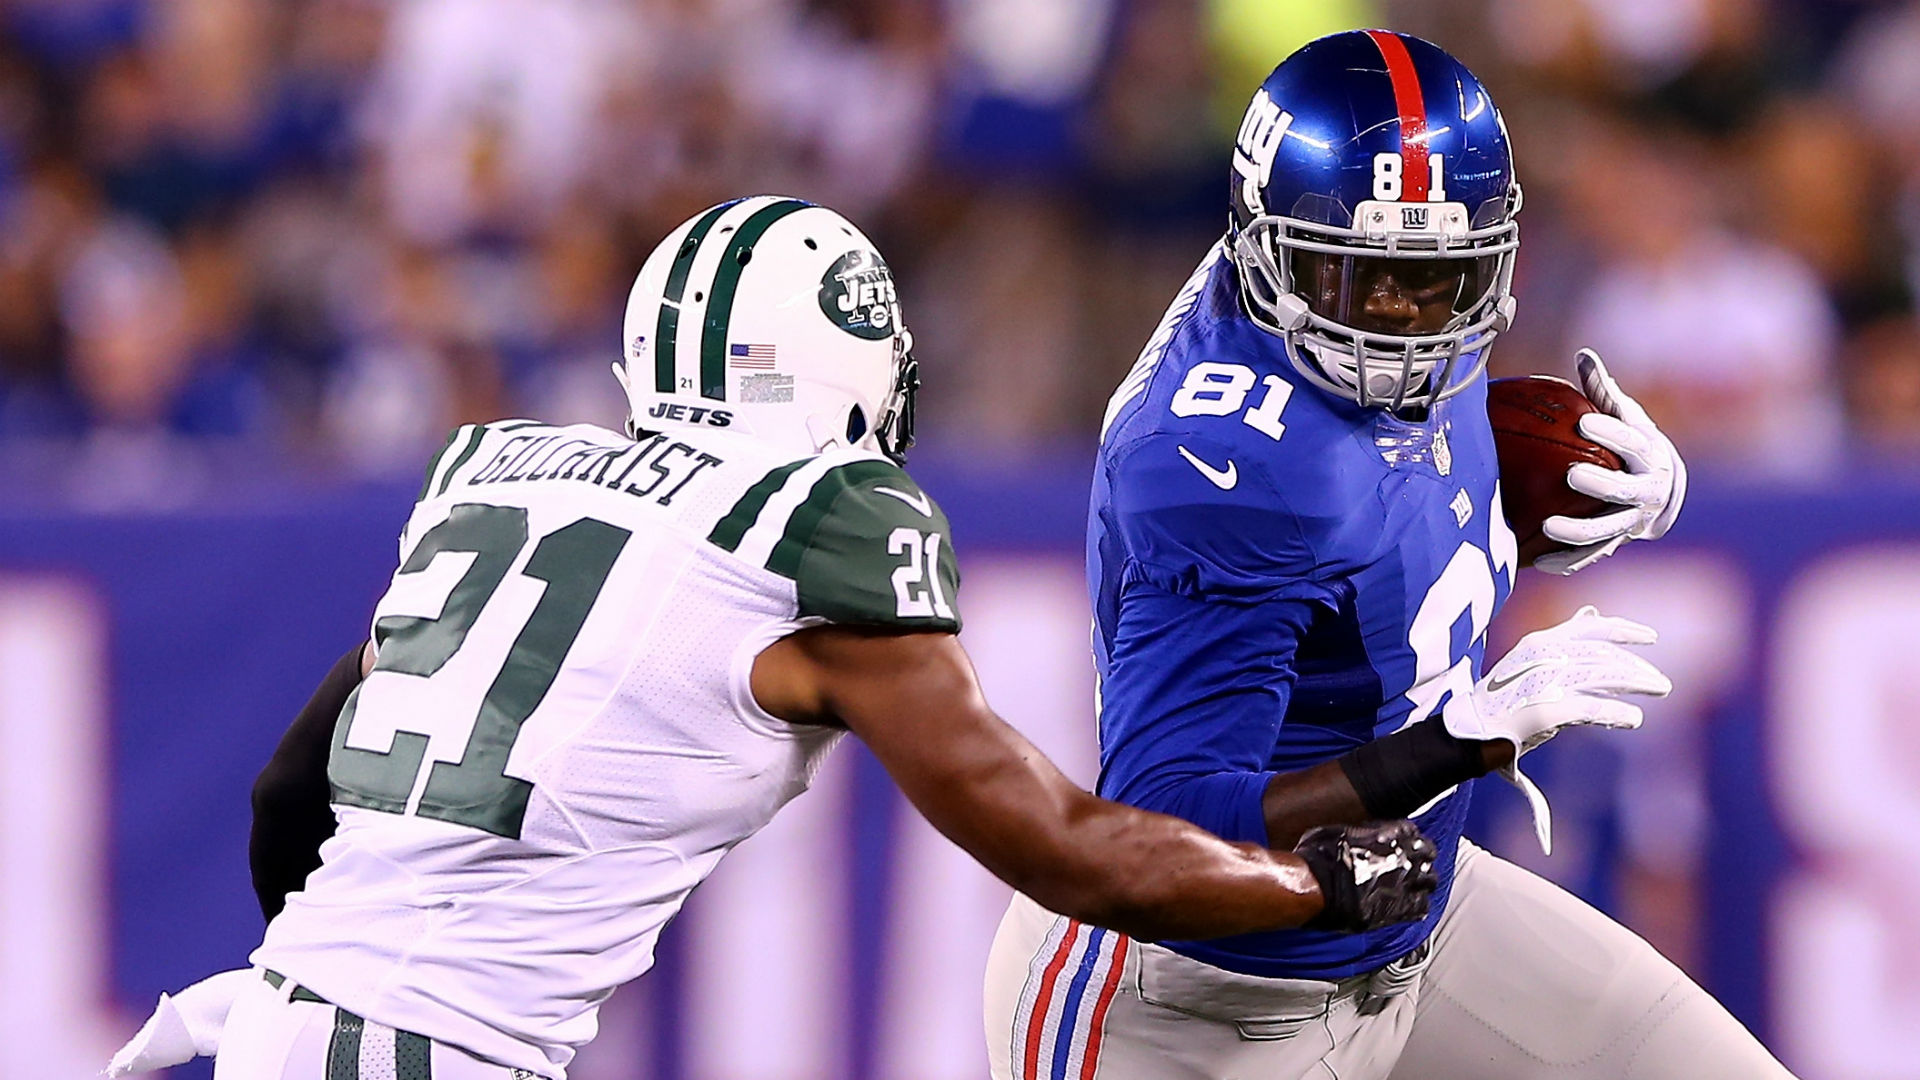 Police say former Giants TE had 25 pounds of pot in vehicle